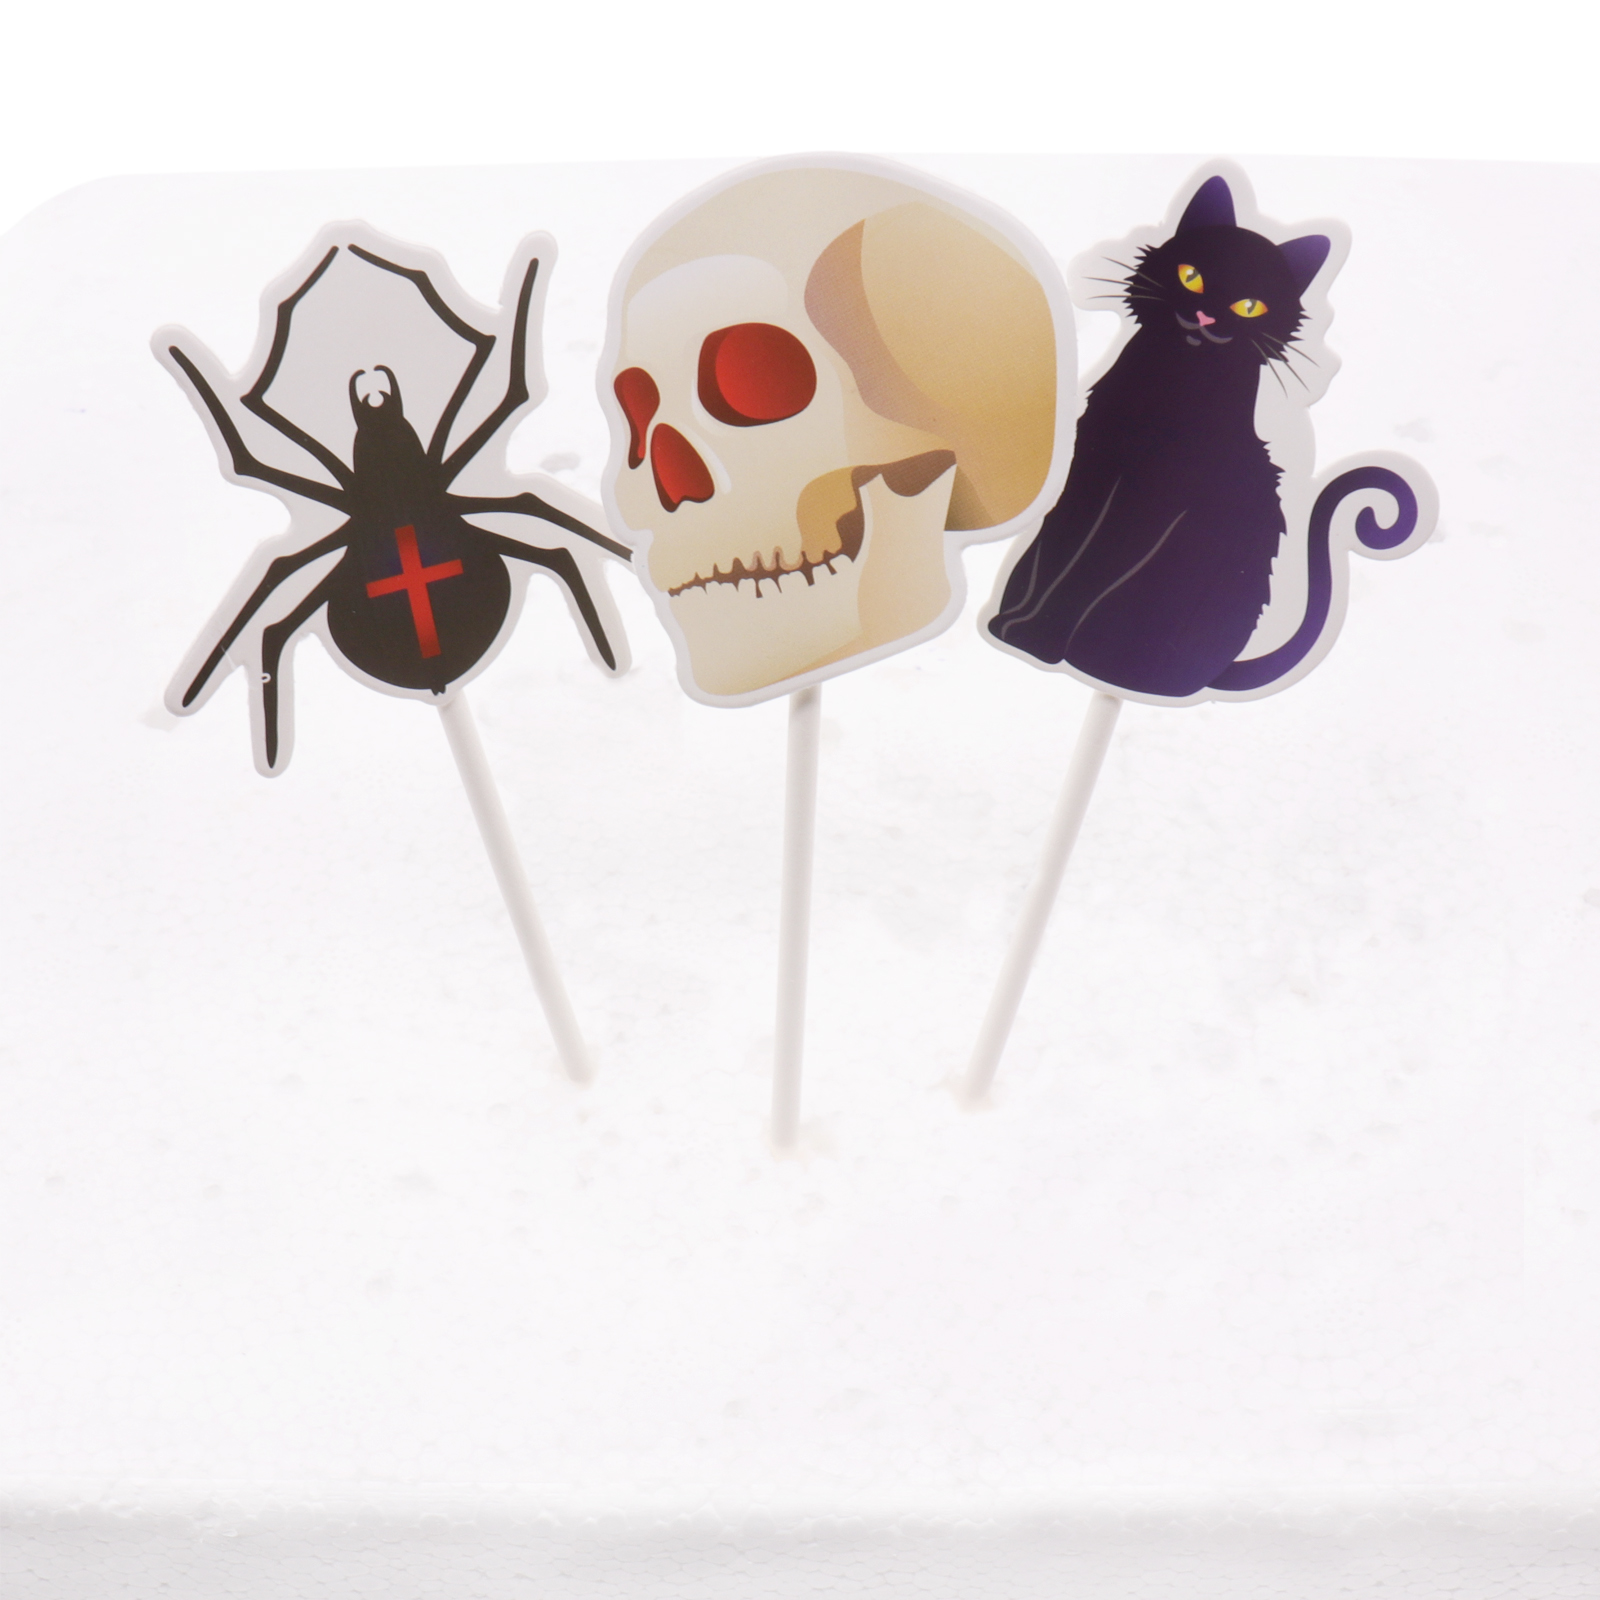 3pcs/pack Halloween Decoration <font><b>Cake</b></font> <font><b>Toppers</b></font> Spider <font><b>black</b></font> <font><b>Cat</b></font> skull bat ghost witch Hat for Halloween Party DIY Supplies image